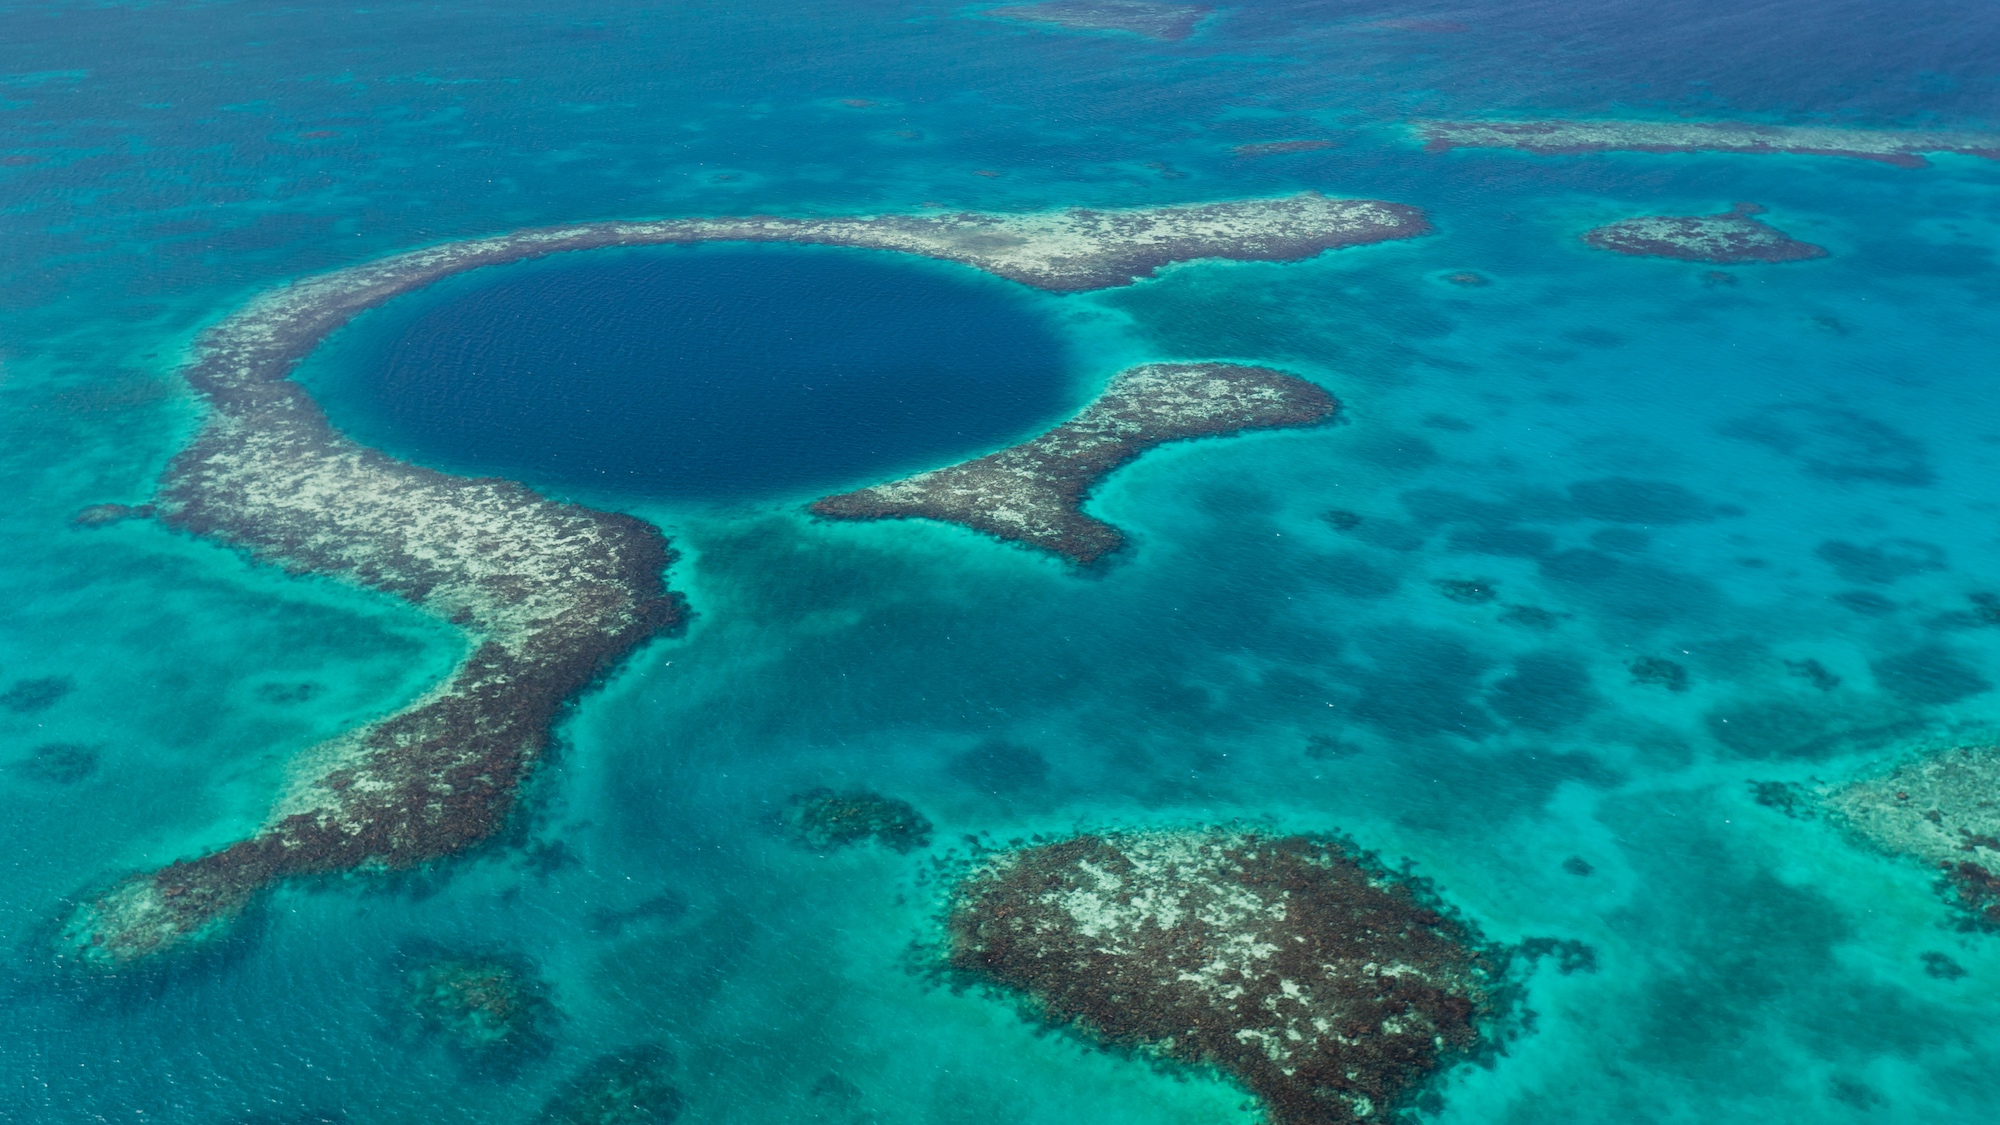 Le Grand trou bleu, Belize